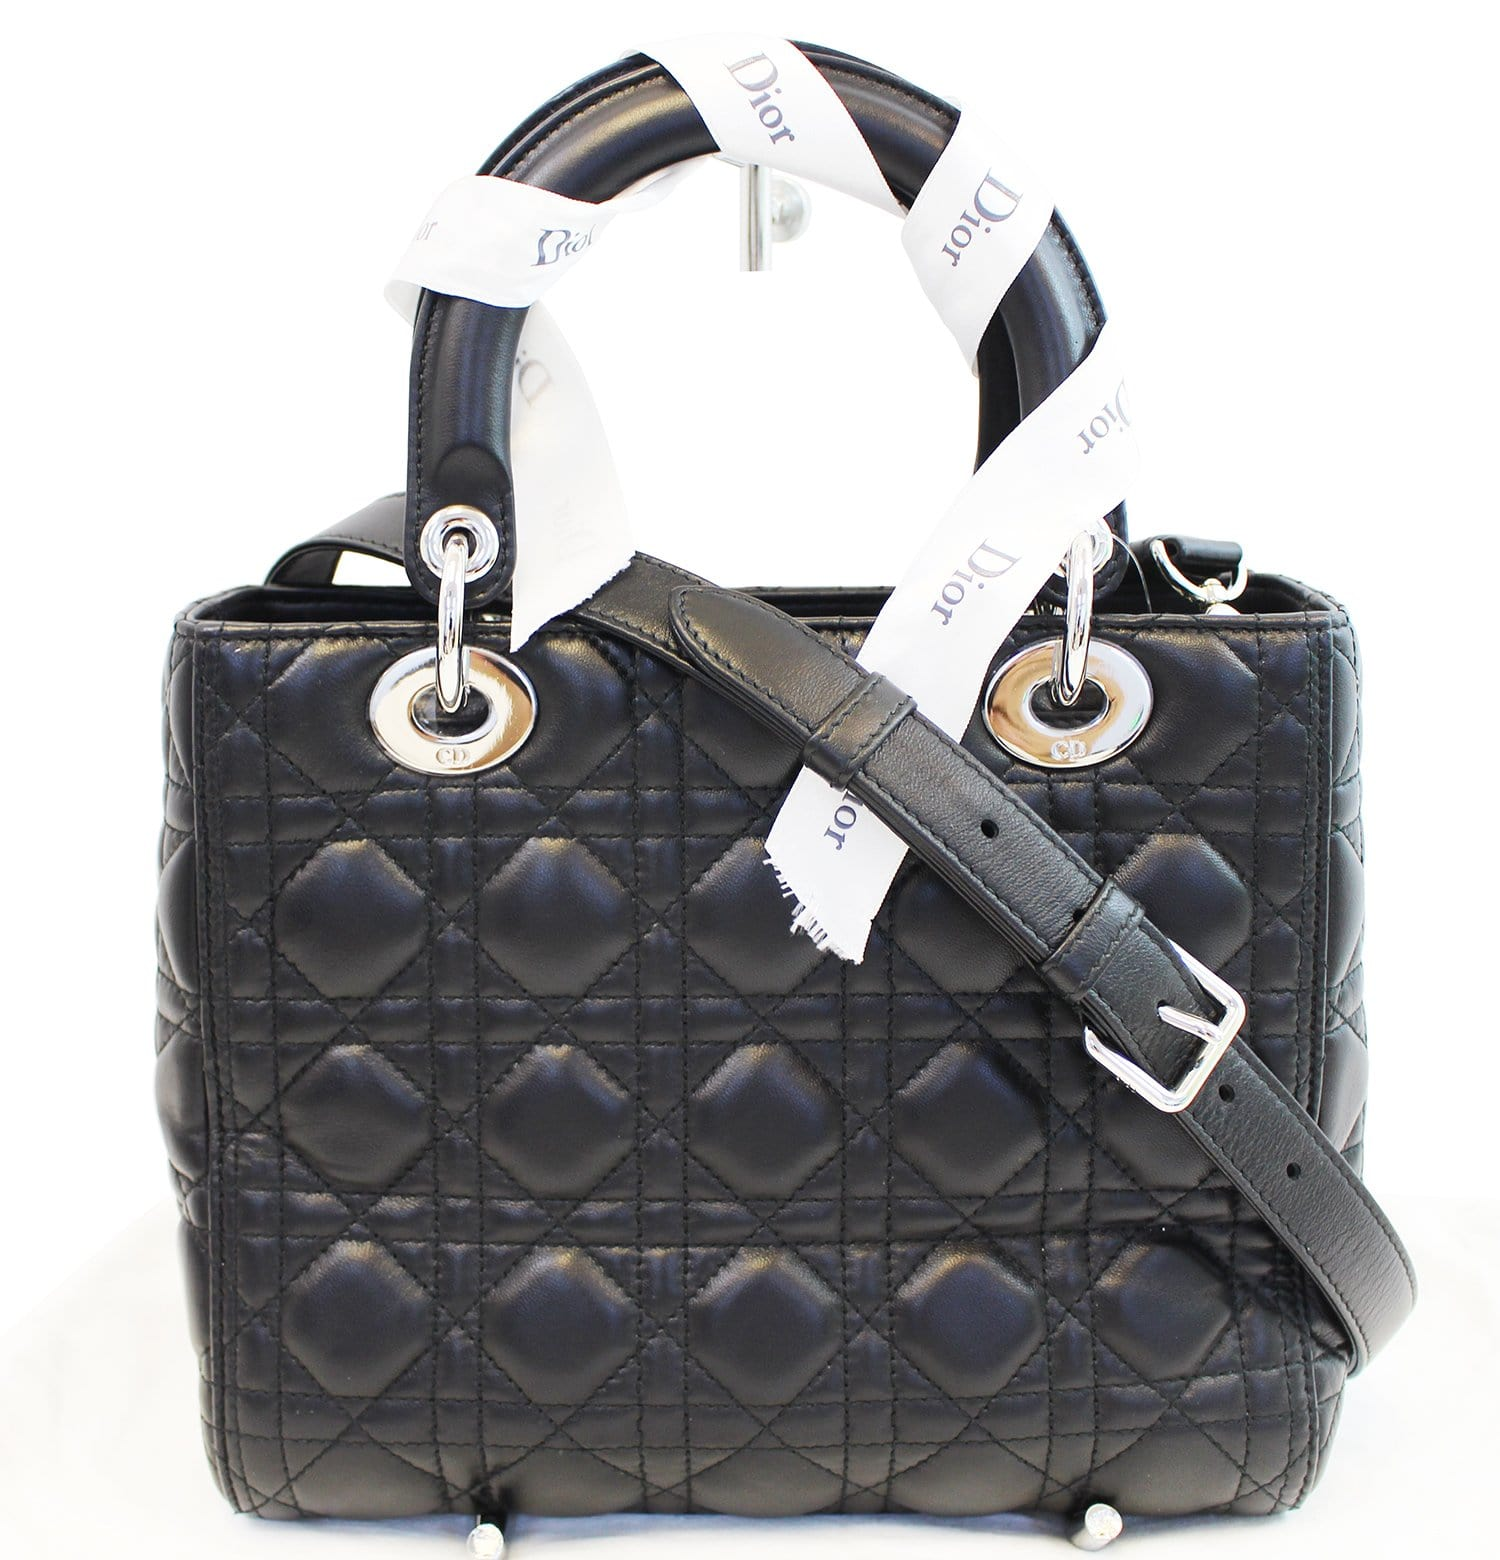 92c48e5be4 CHRISTIAN DIOR Cannage Quilted Lambskin Leather Lady Dior Medium Bag TT1027